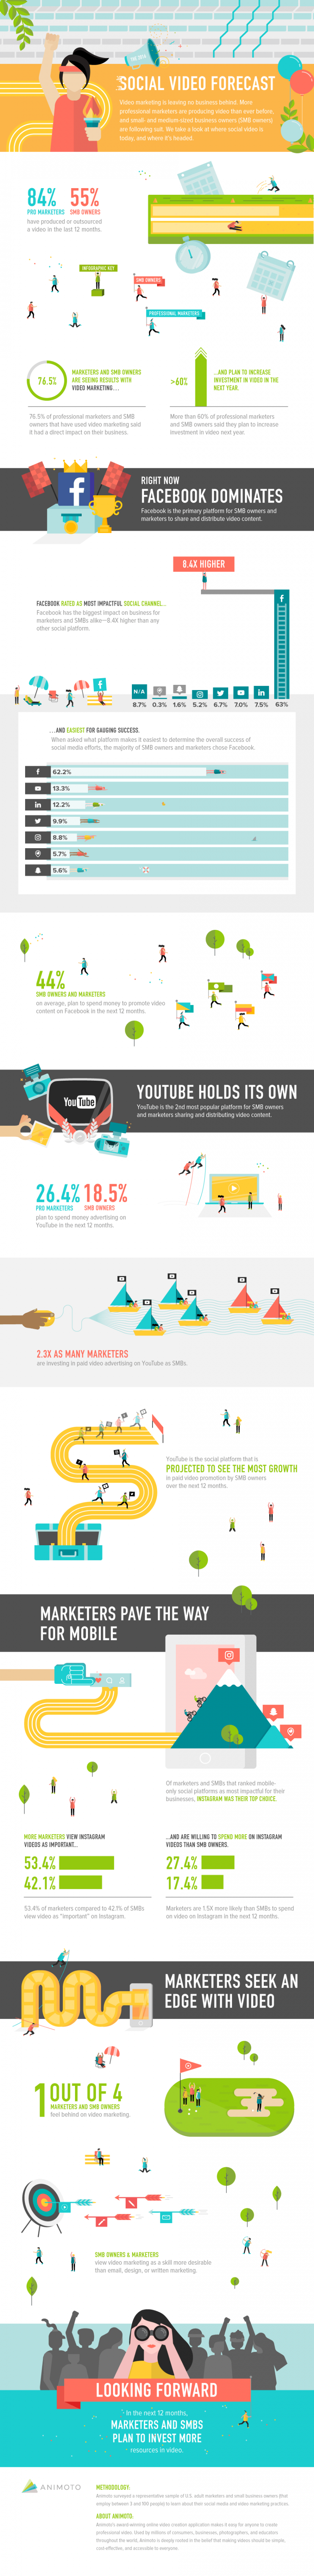 Video Marketing Trend: 55 Percent of SMB Owners Say Video Marketing a Must (Infographic)